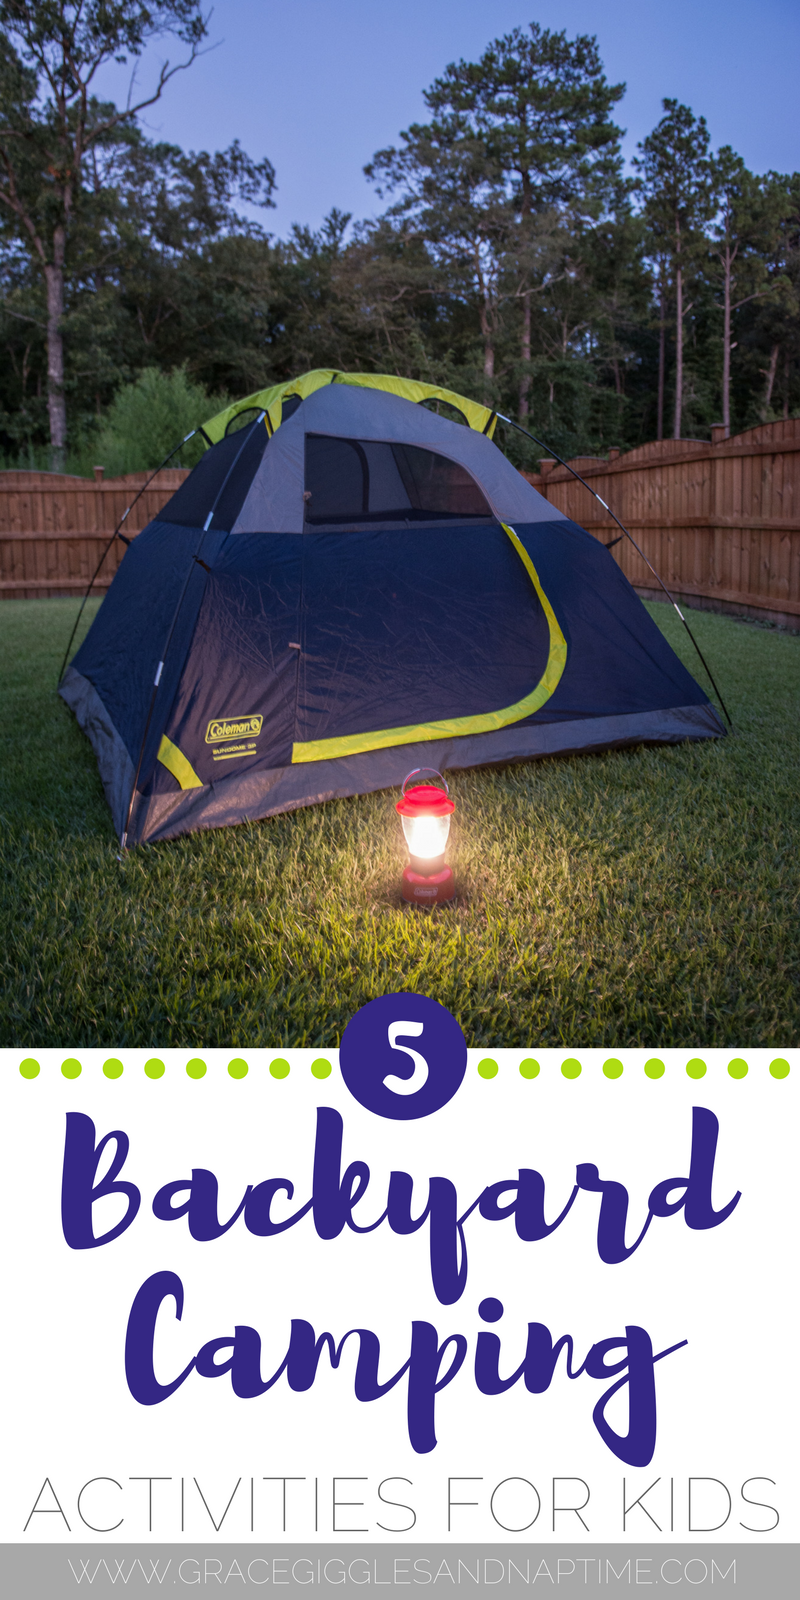 5 Backyard Camping Activities for Kids - Grace, Giggles ...